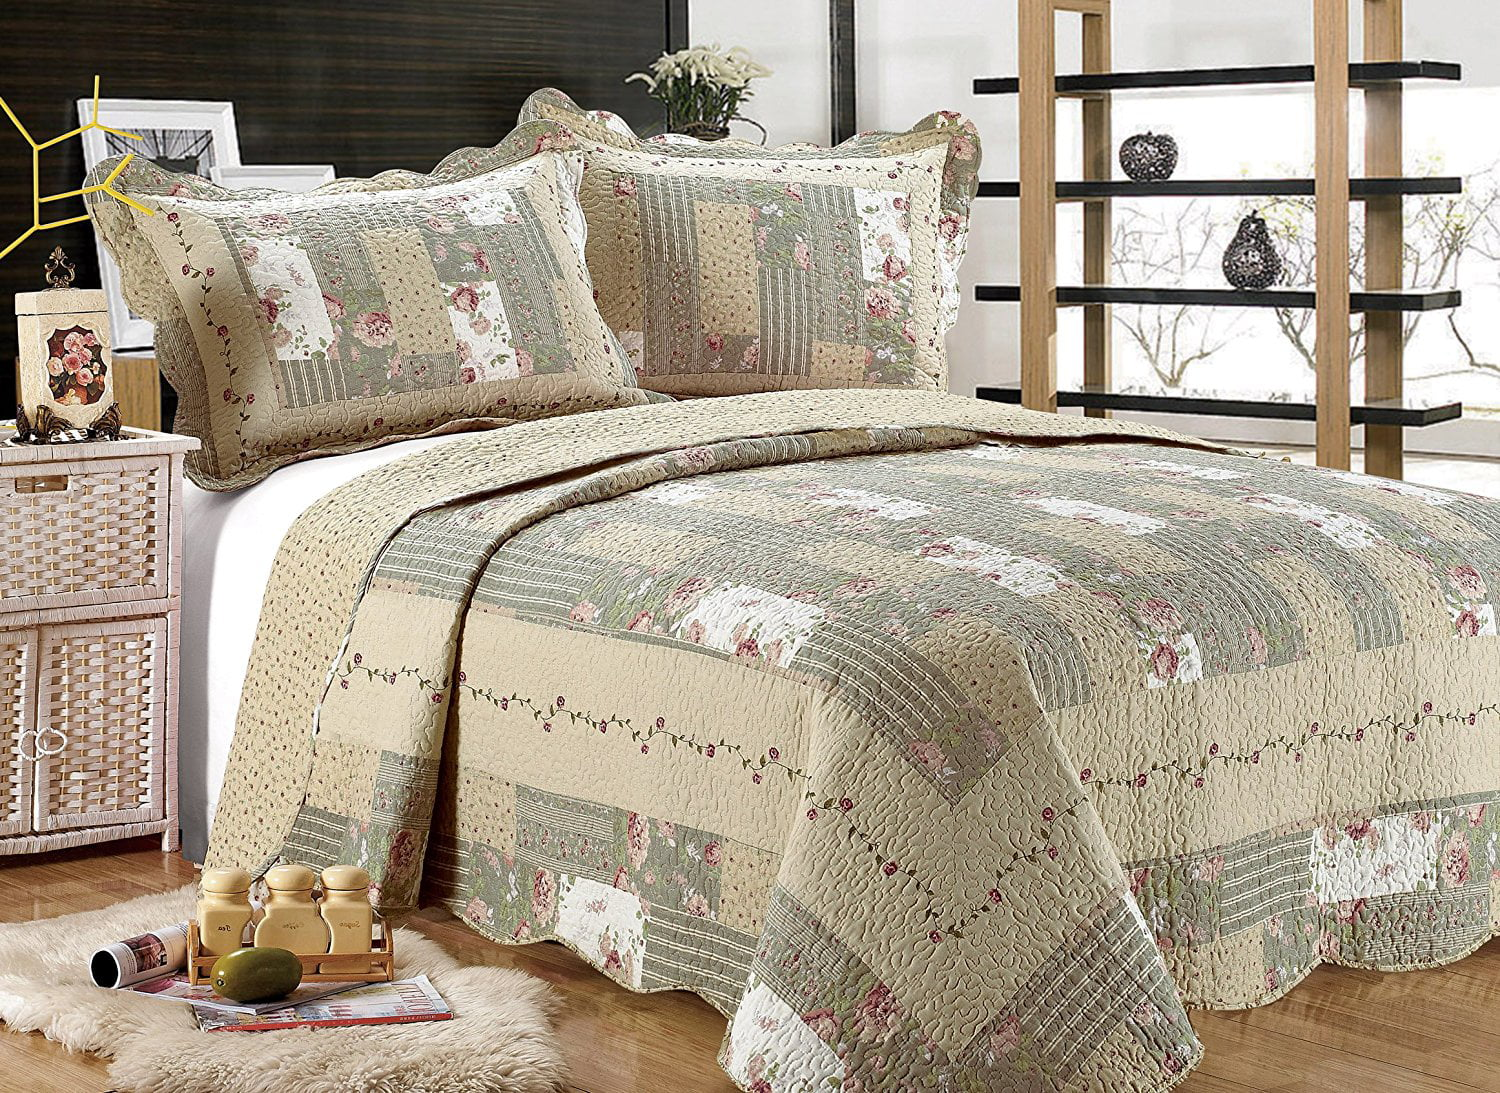 all for you 3pc reversible quilt set bedspread or coverlet with patchwork prints oversized king california king 110 x120